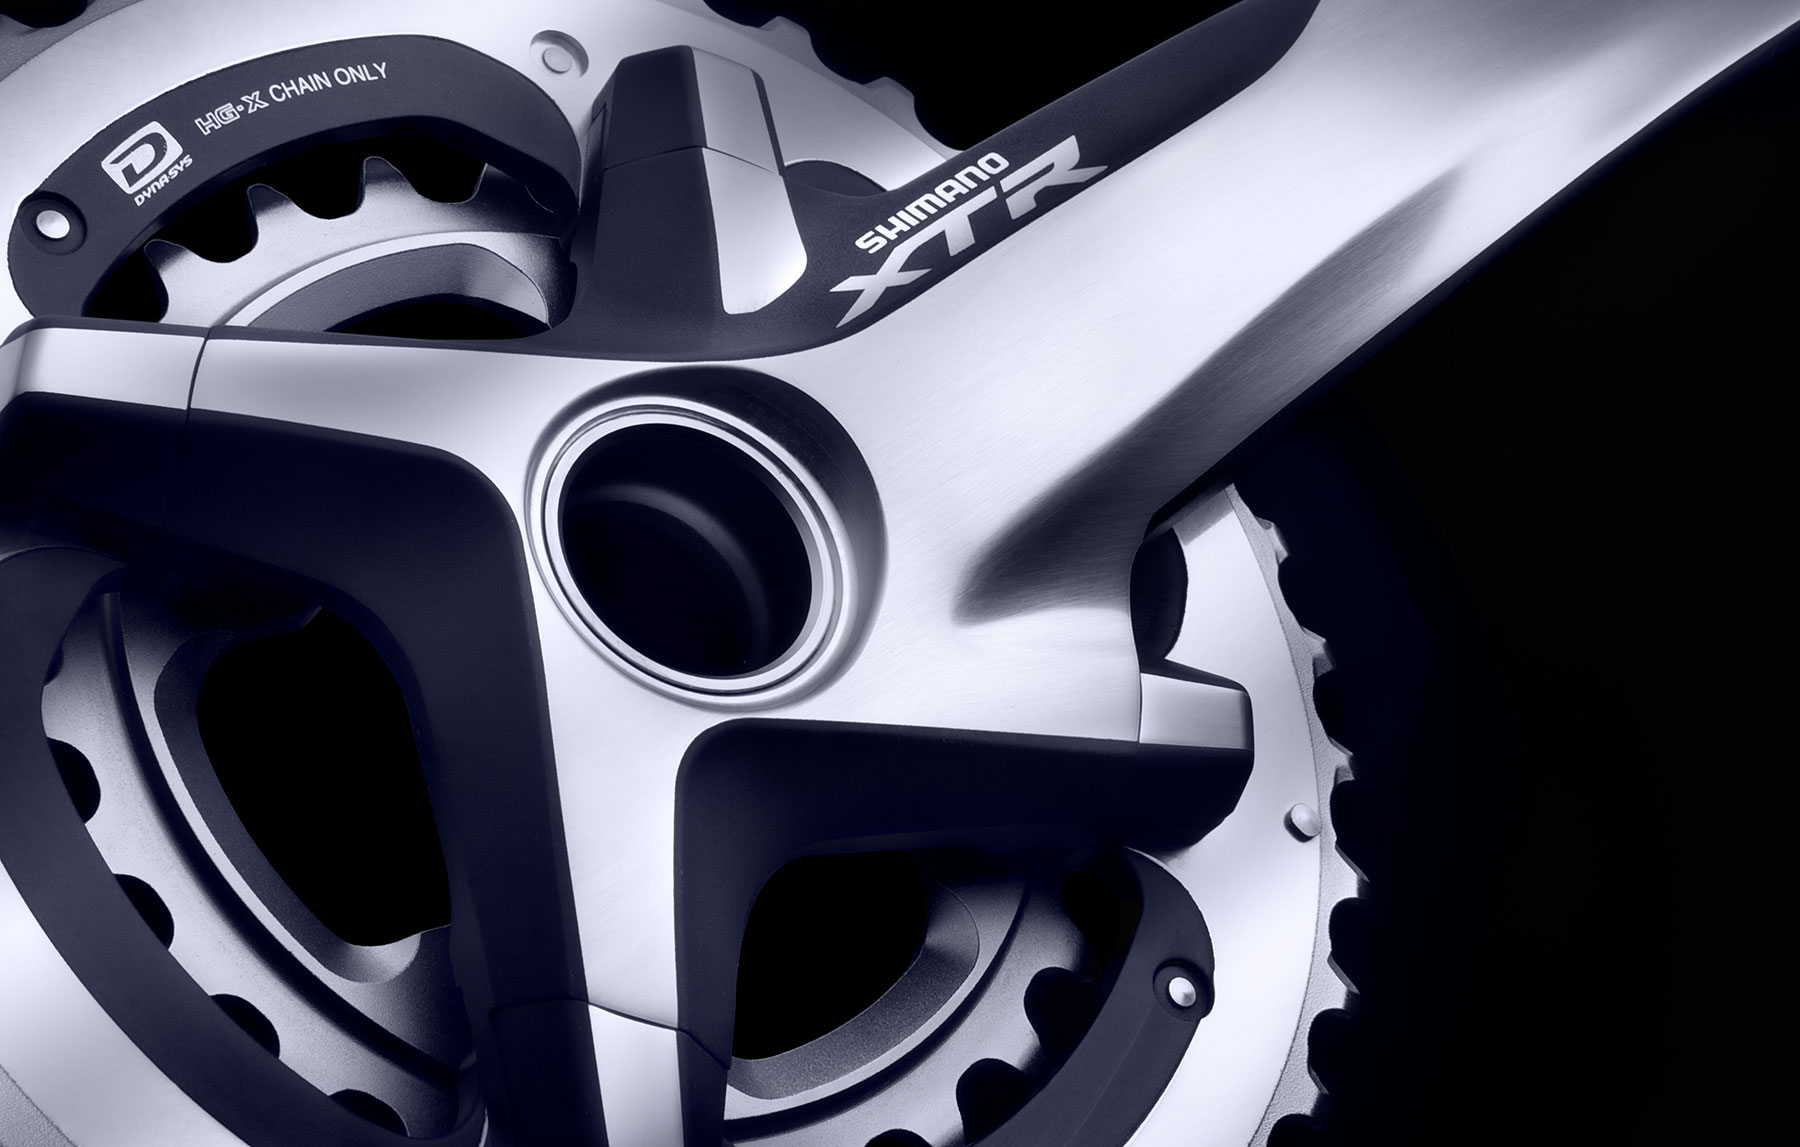 Closeup of Shimano bicycle gears | Dovis Bird Agency Reps